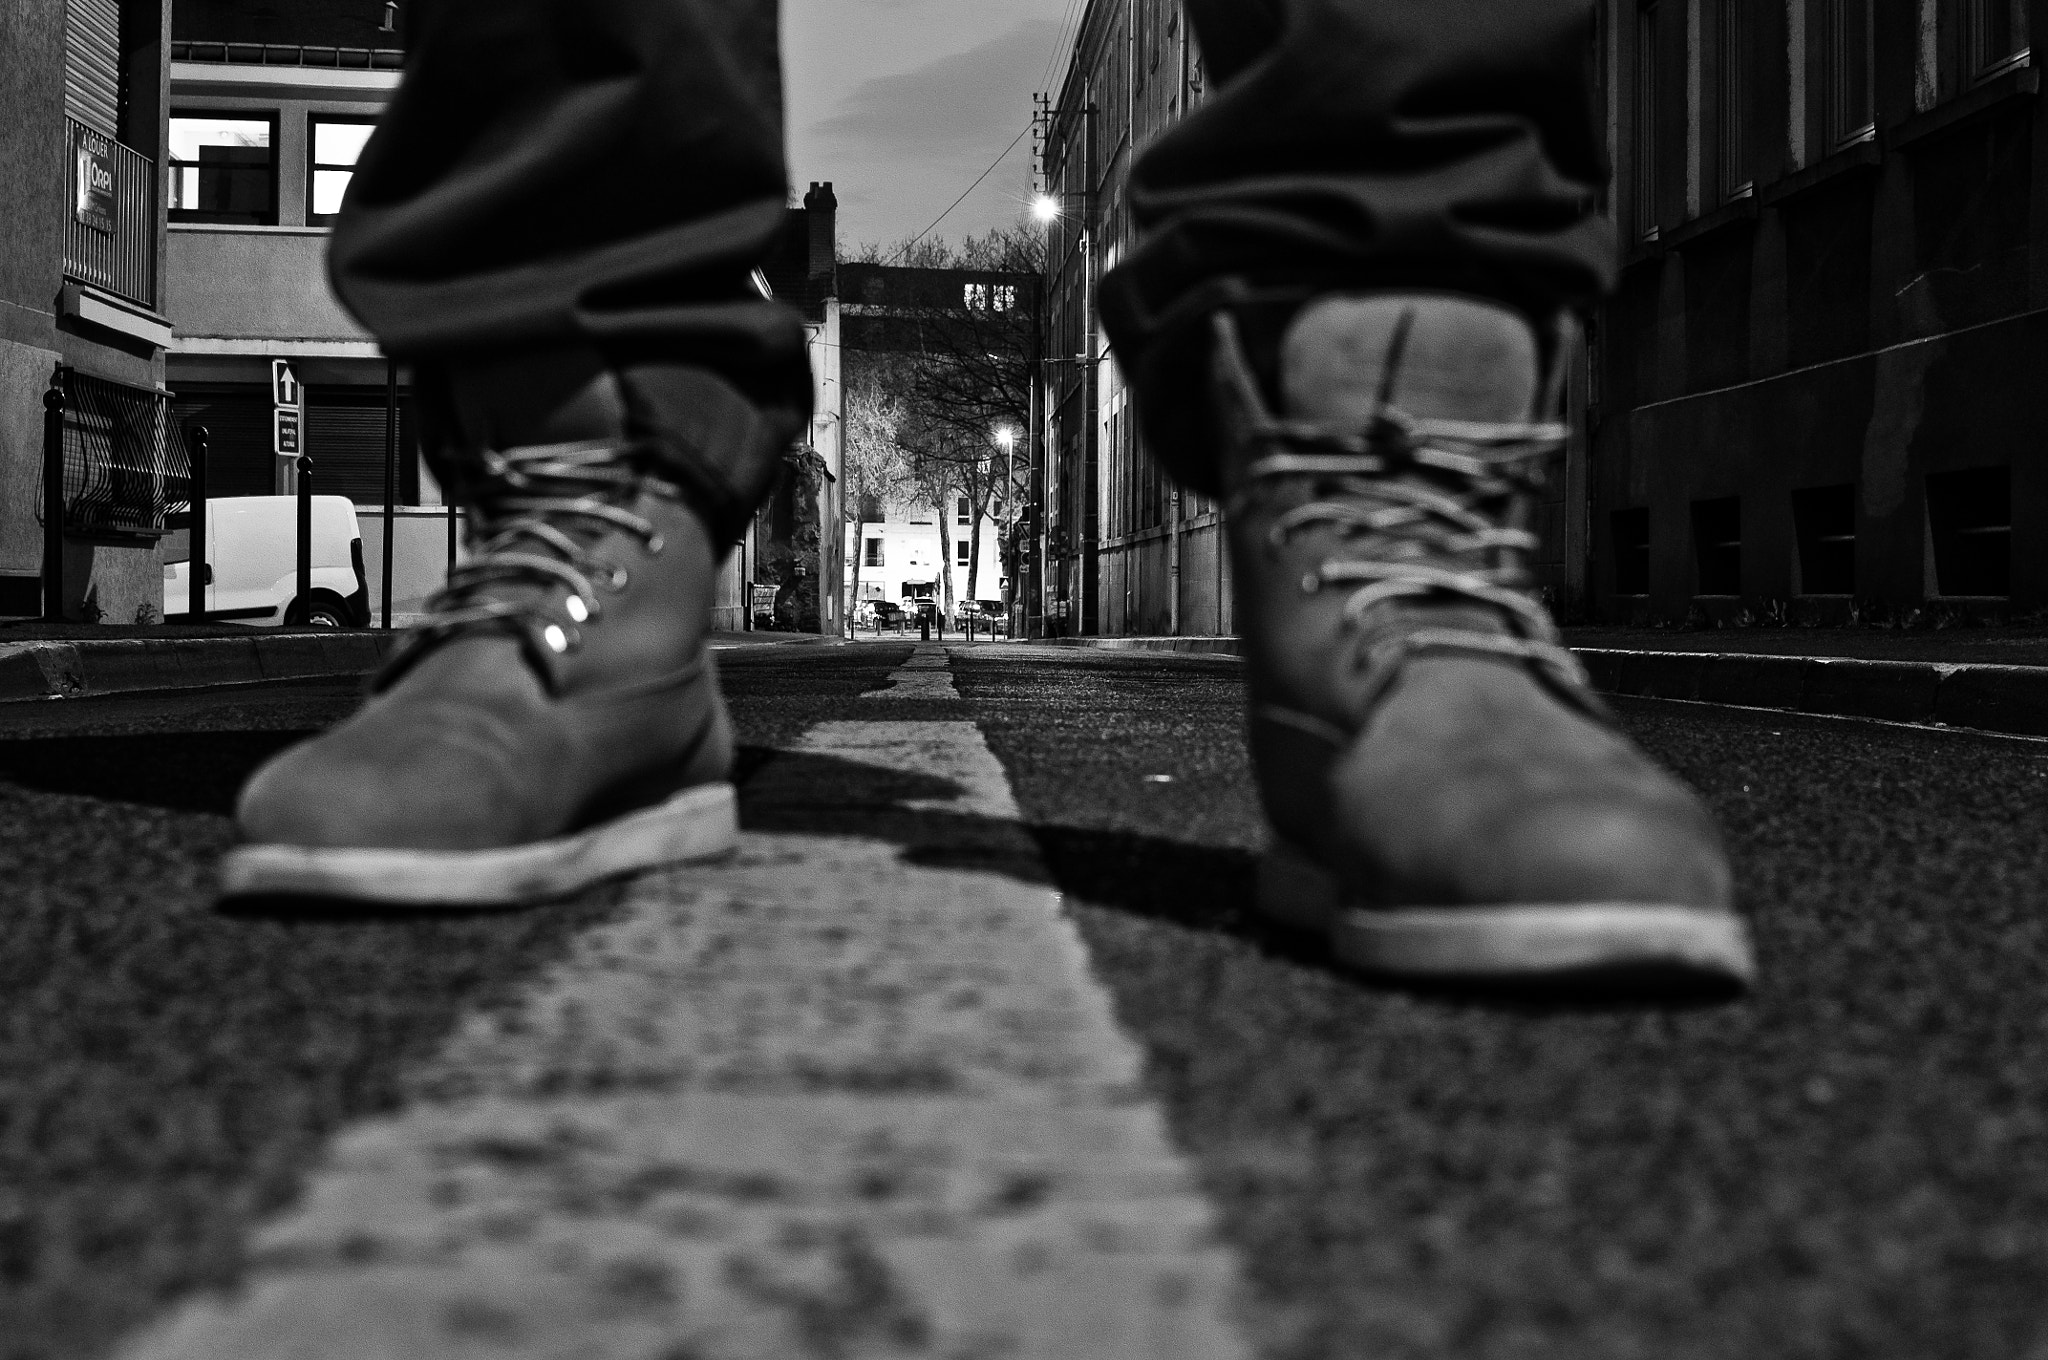 Photograph Shoes on the street by Nabil BACHIR-CHERIF on 500px